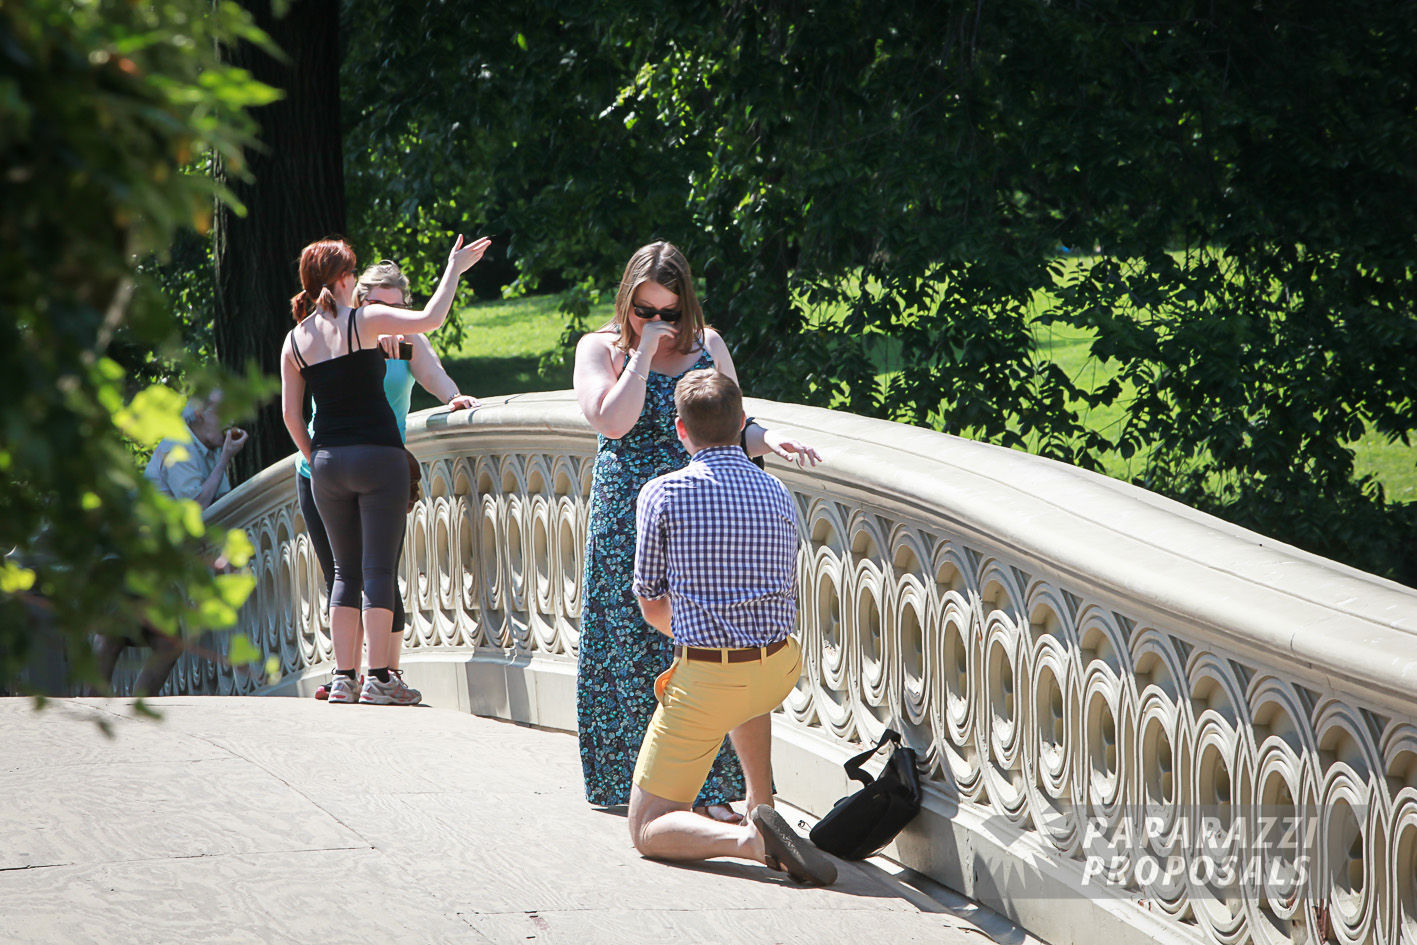 Nick And Elizabeths Bow Bridge Paparazzi Proposal In